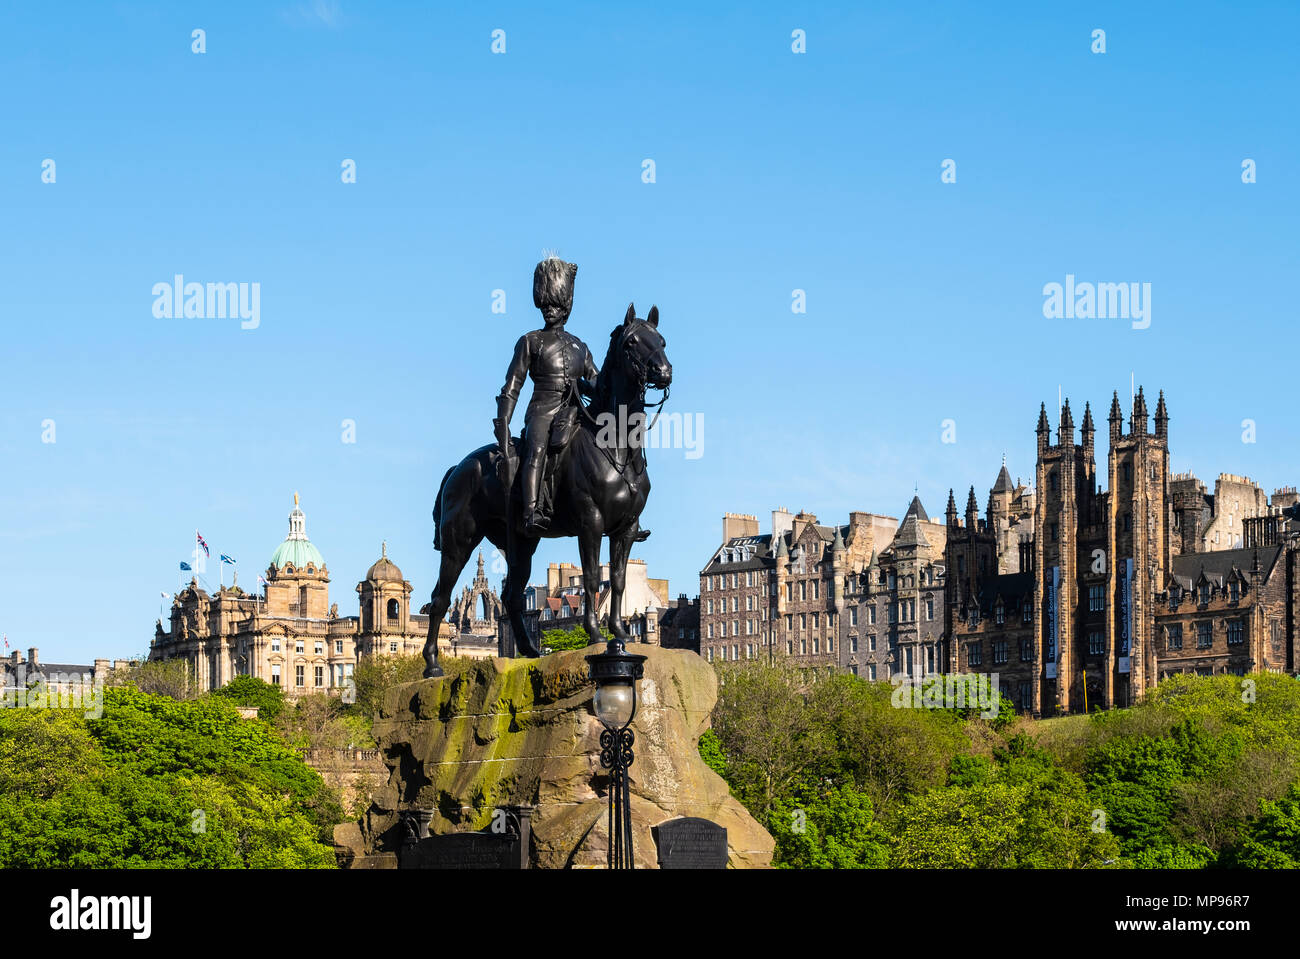 The Royal Scots Greys Monument on Princes Street in Edinburgh, Scotland UK - Stock Image